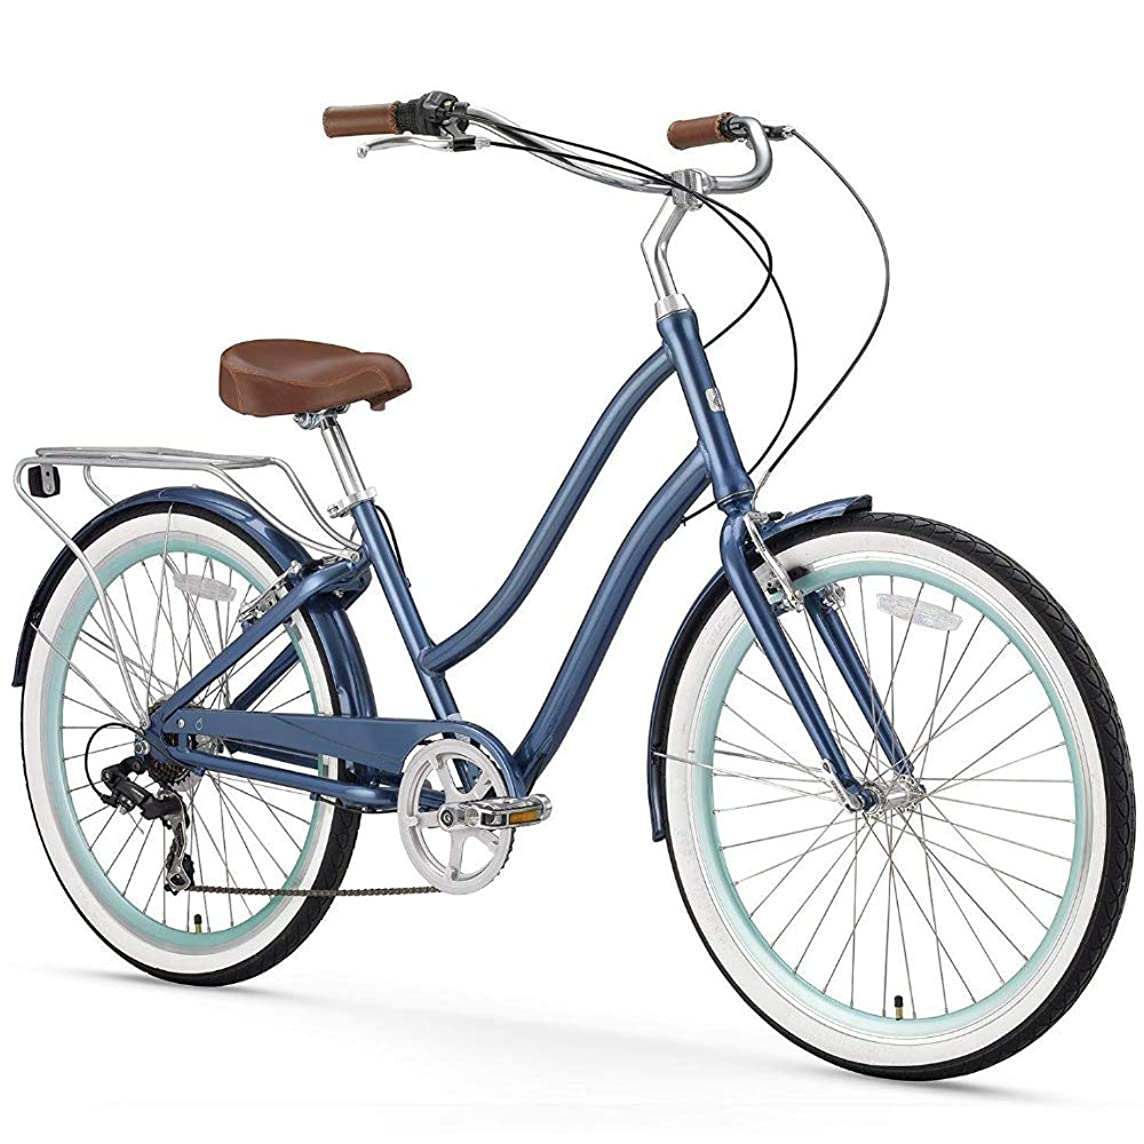 sixthreezero EVRYjourney Women's Step-Through Hybrid Cruiser Bicycle (24-Inch and 26-Inch)